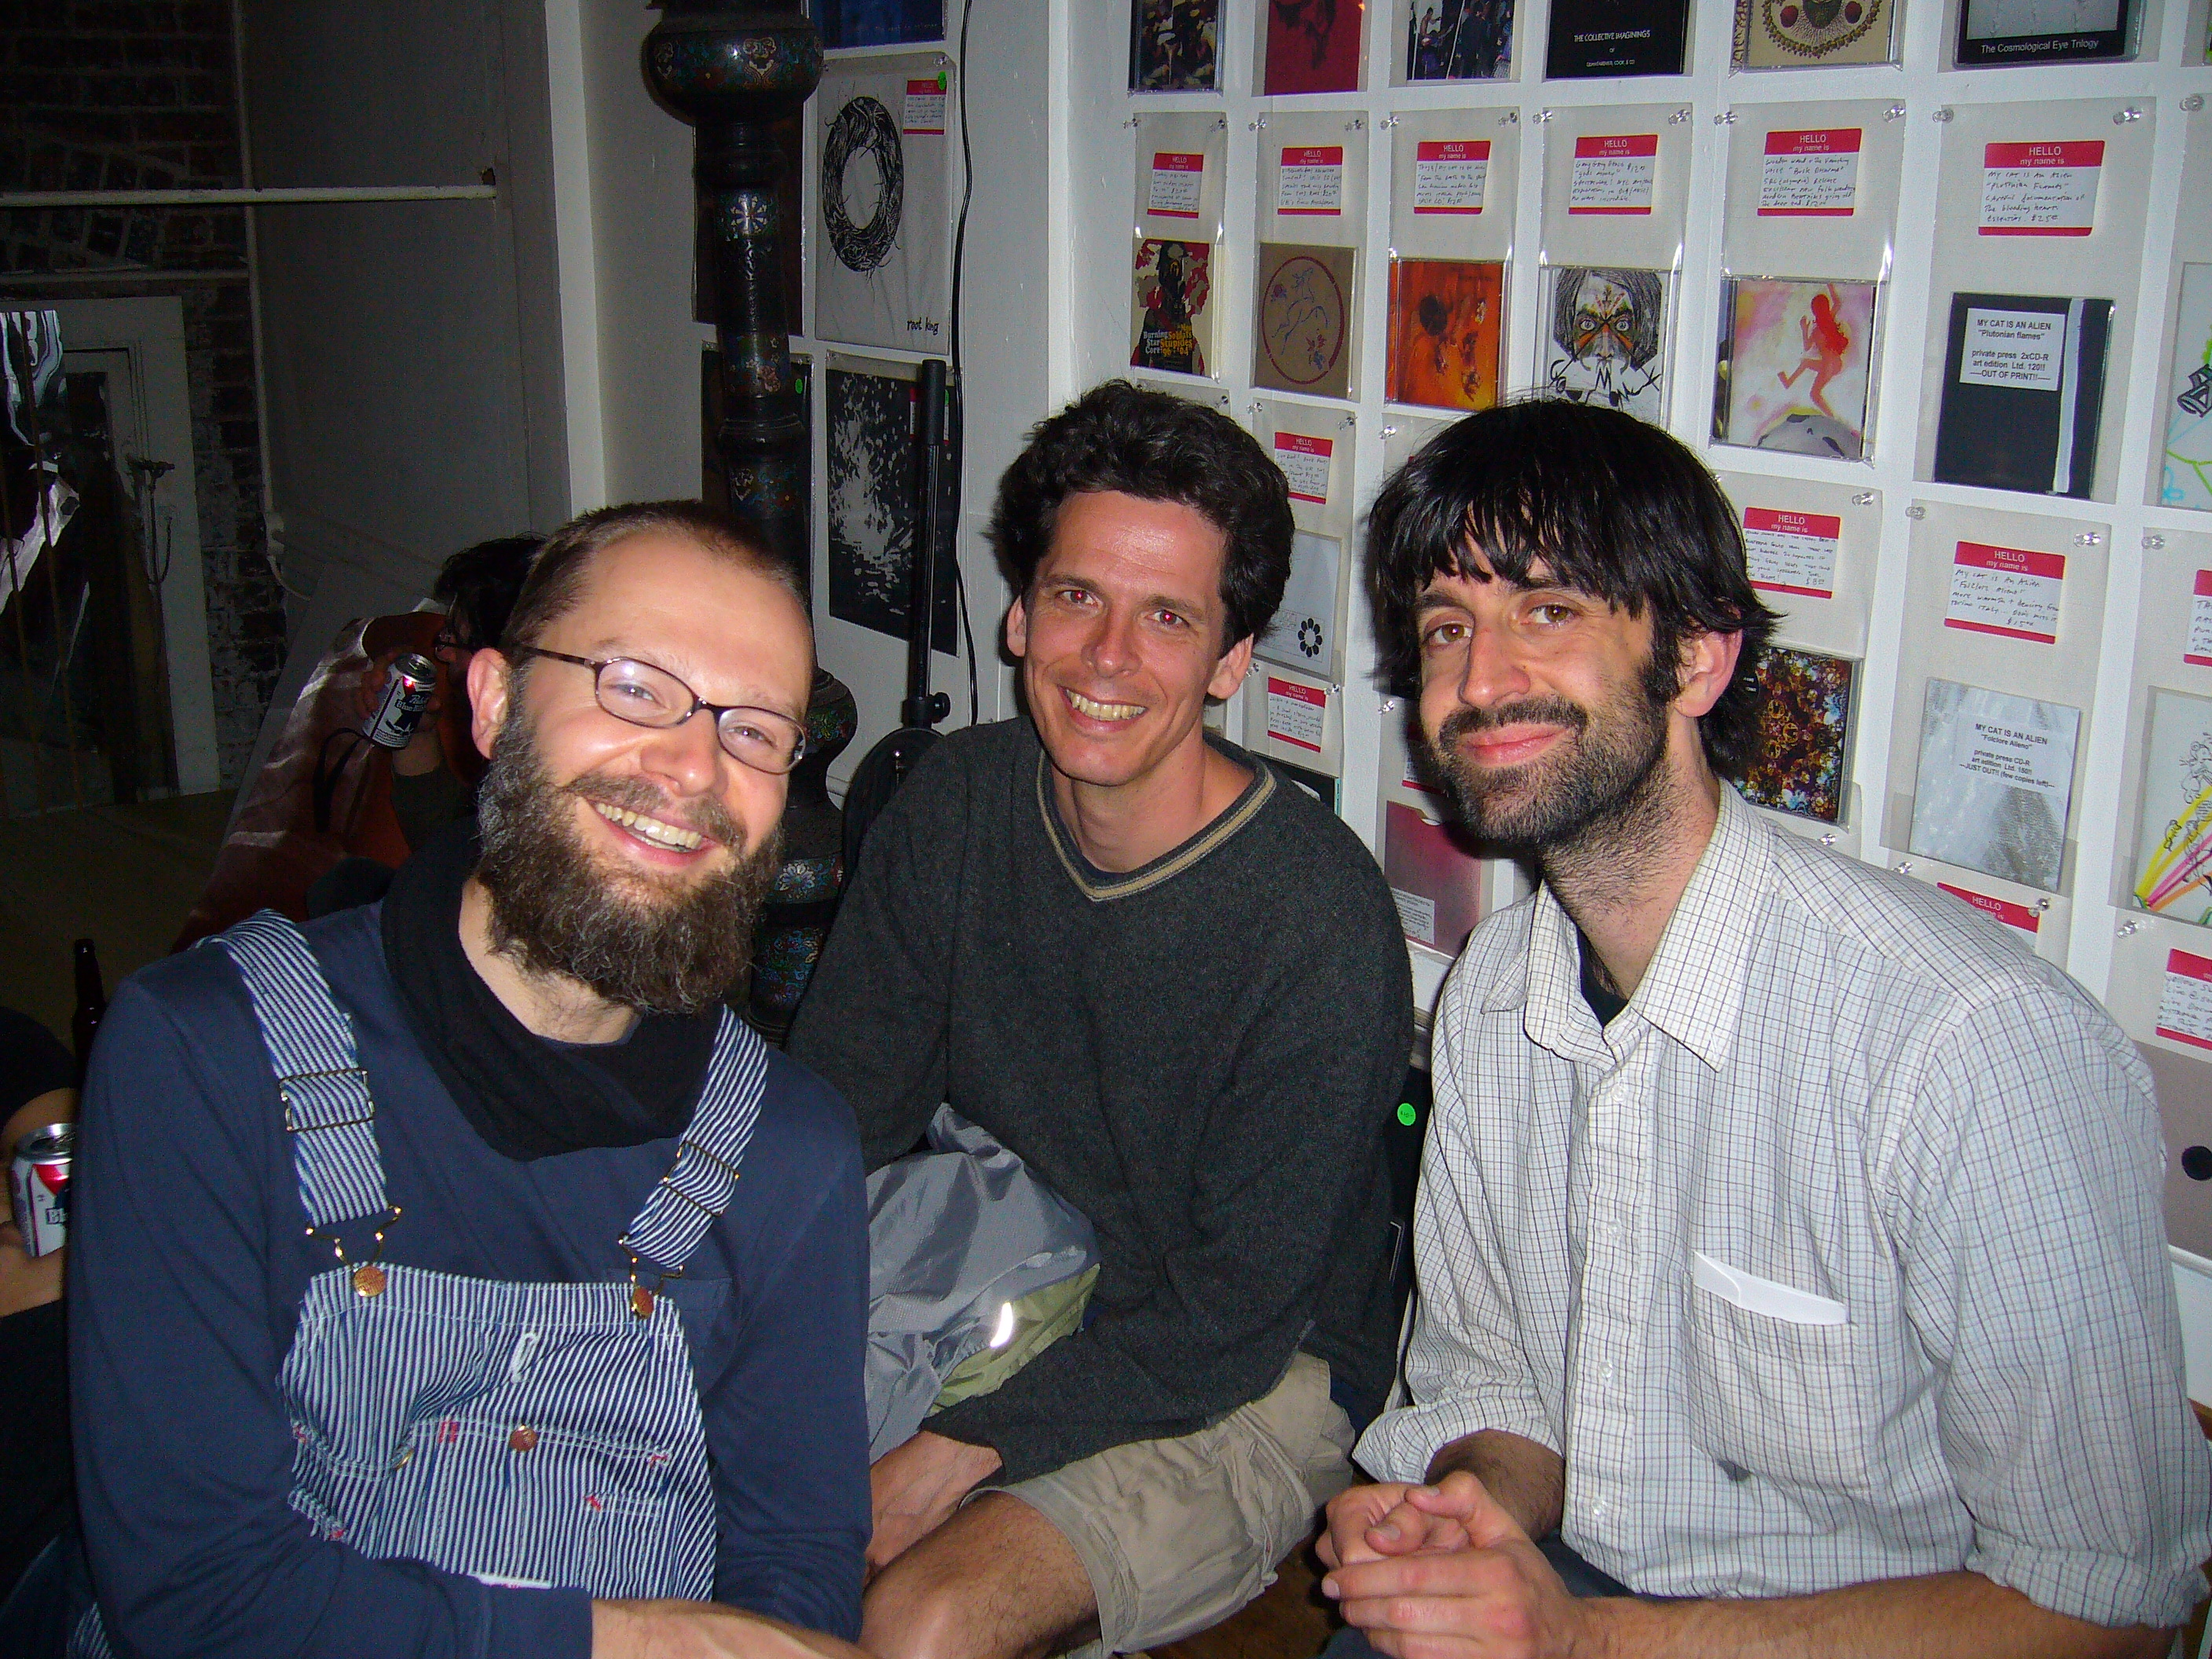 David Gatten, Alex McKenzie, and Matt McCormick at the 2008 PDX Film Festival